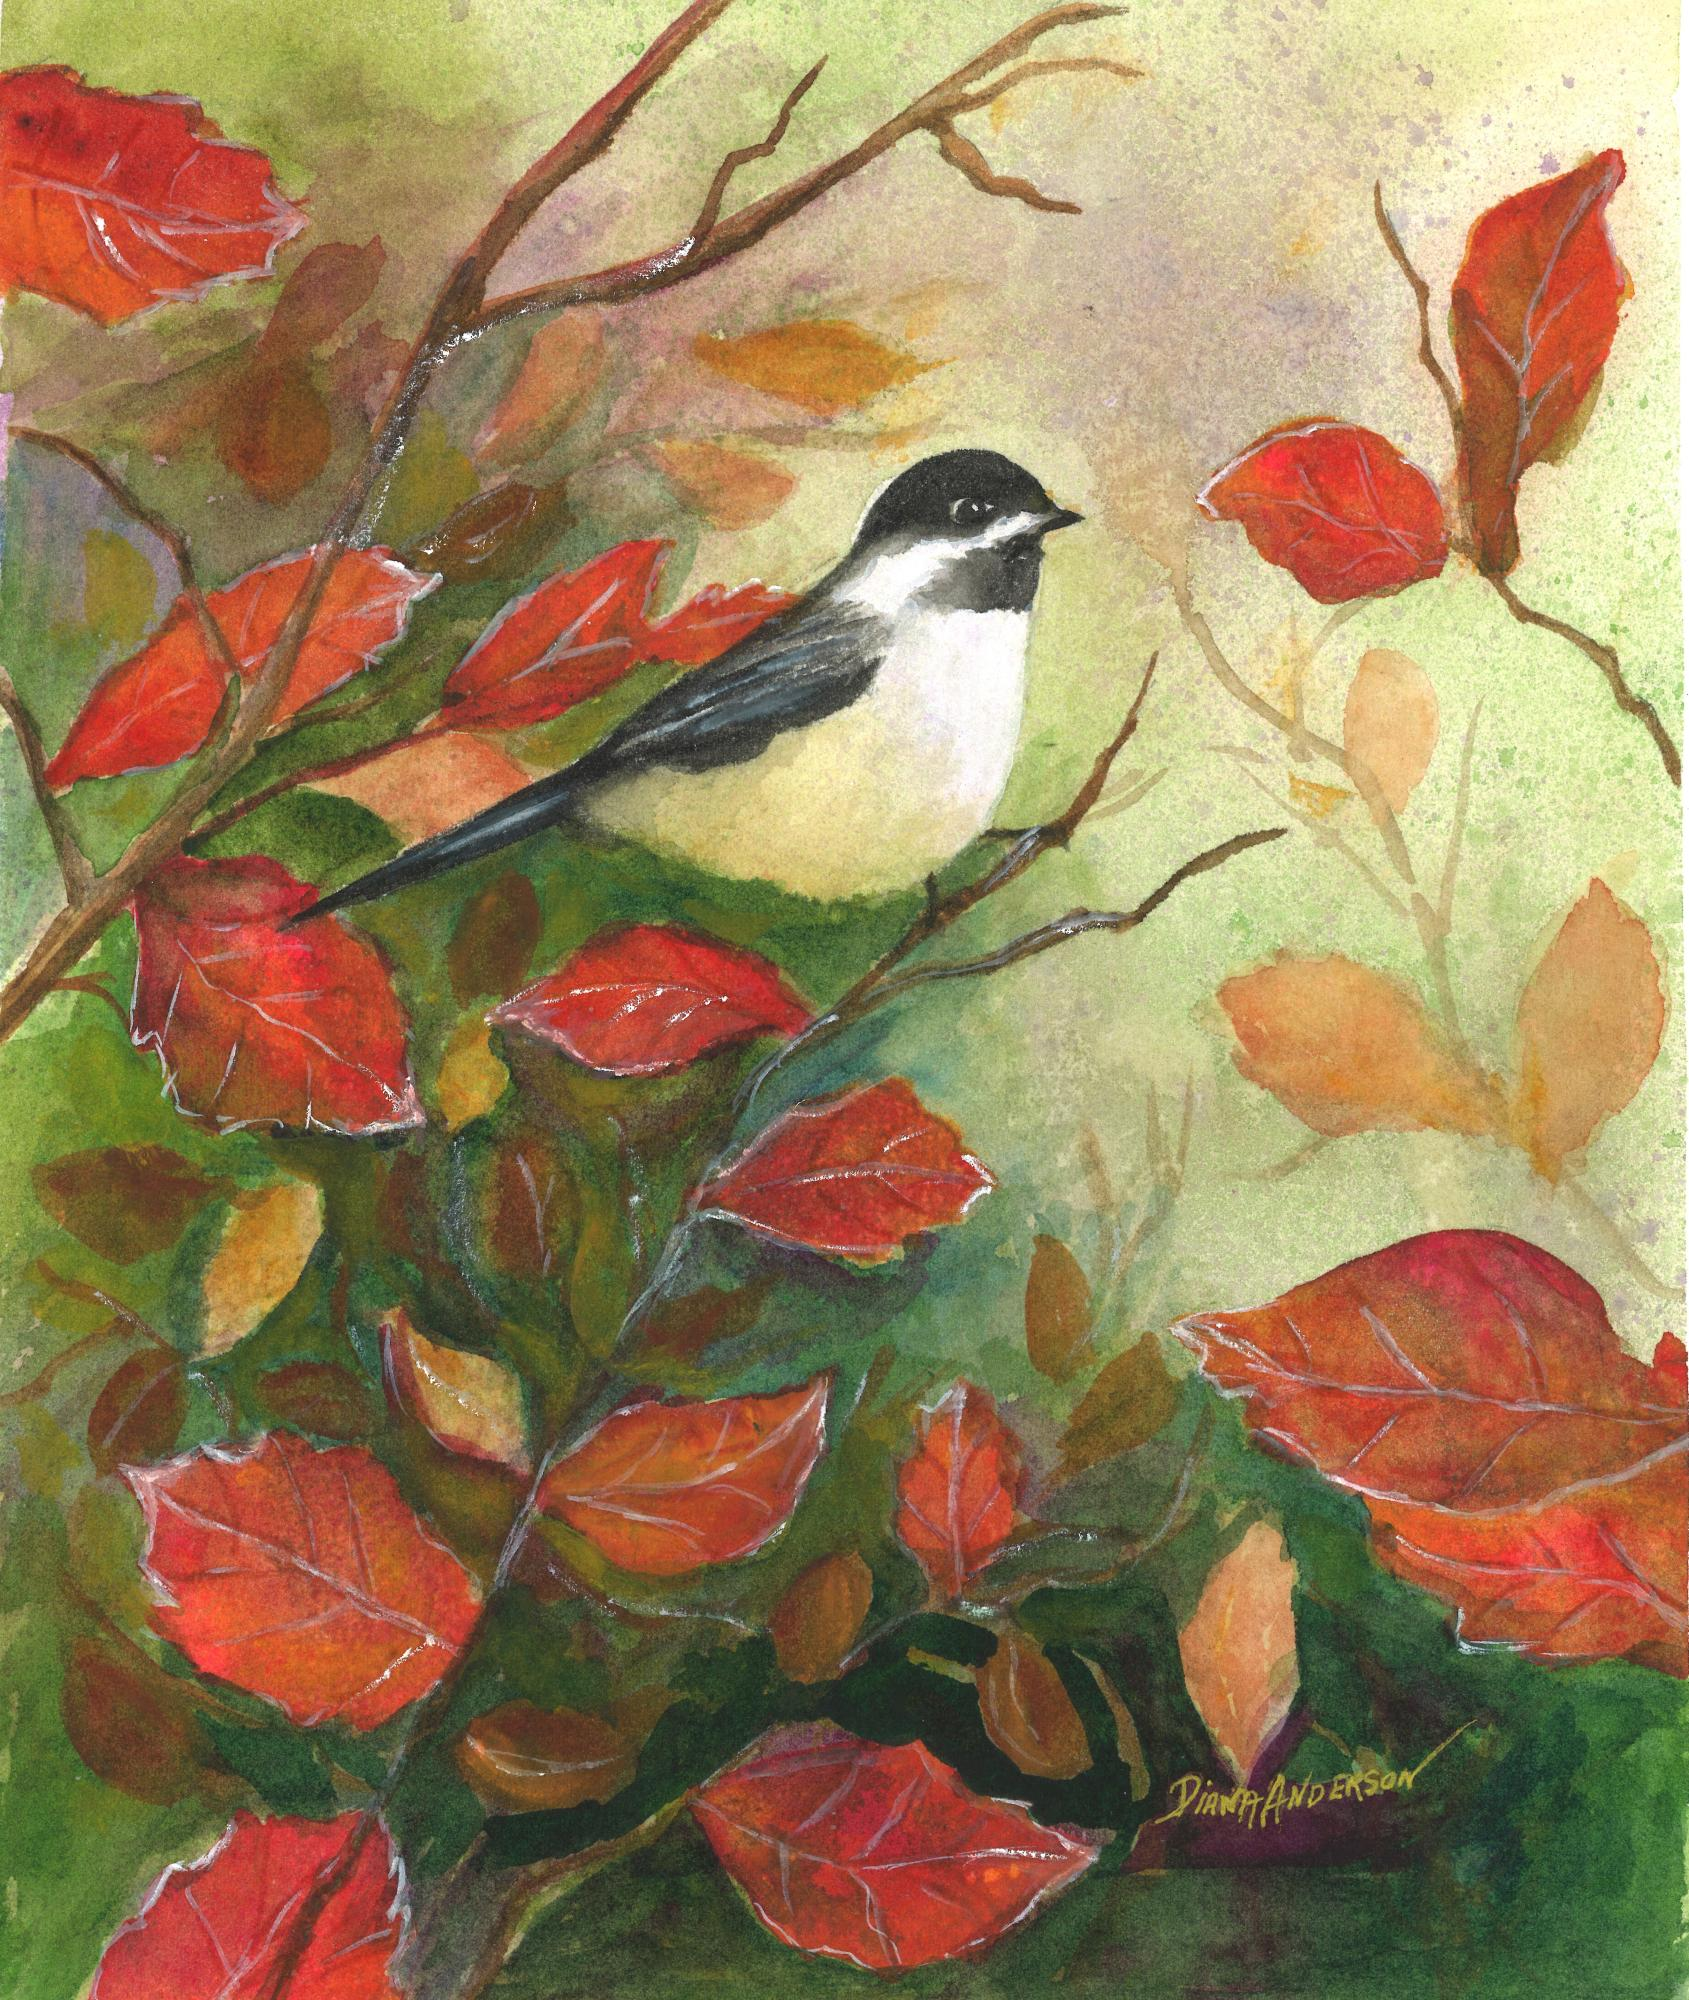 Bird_in_Autumn_leaves.jpg